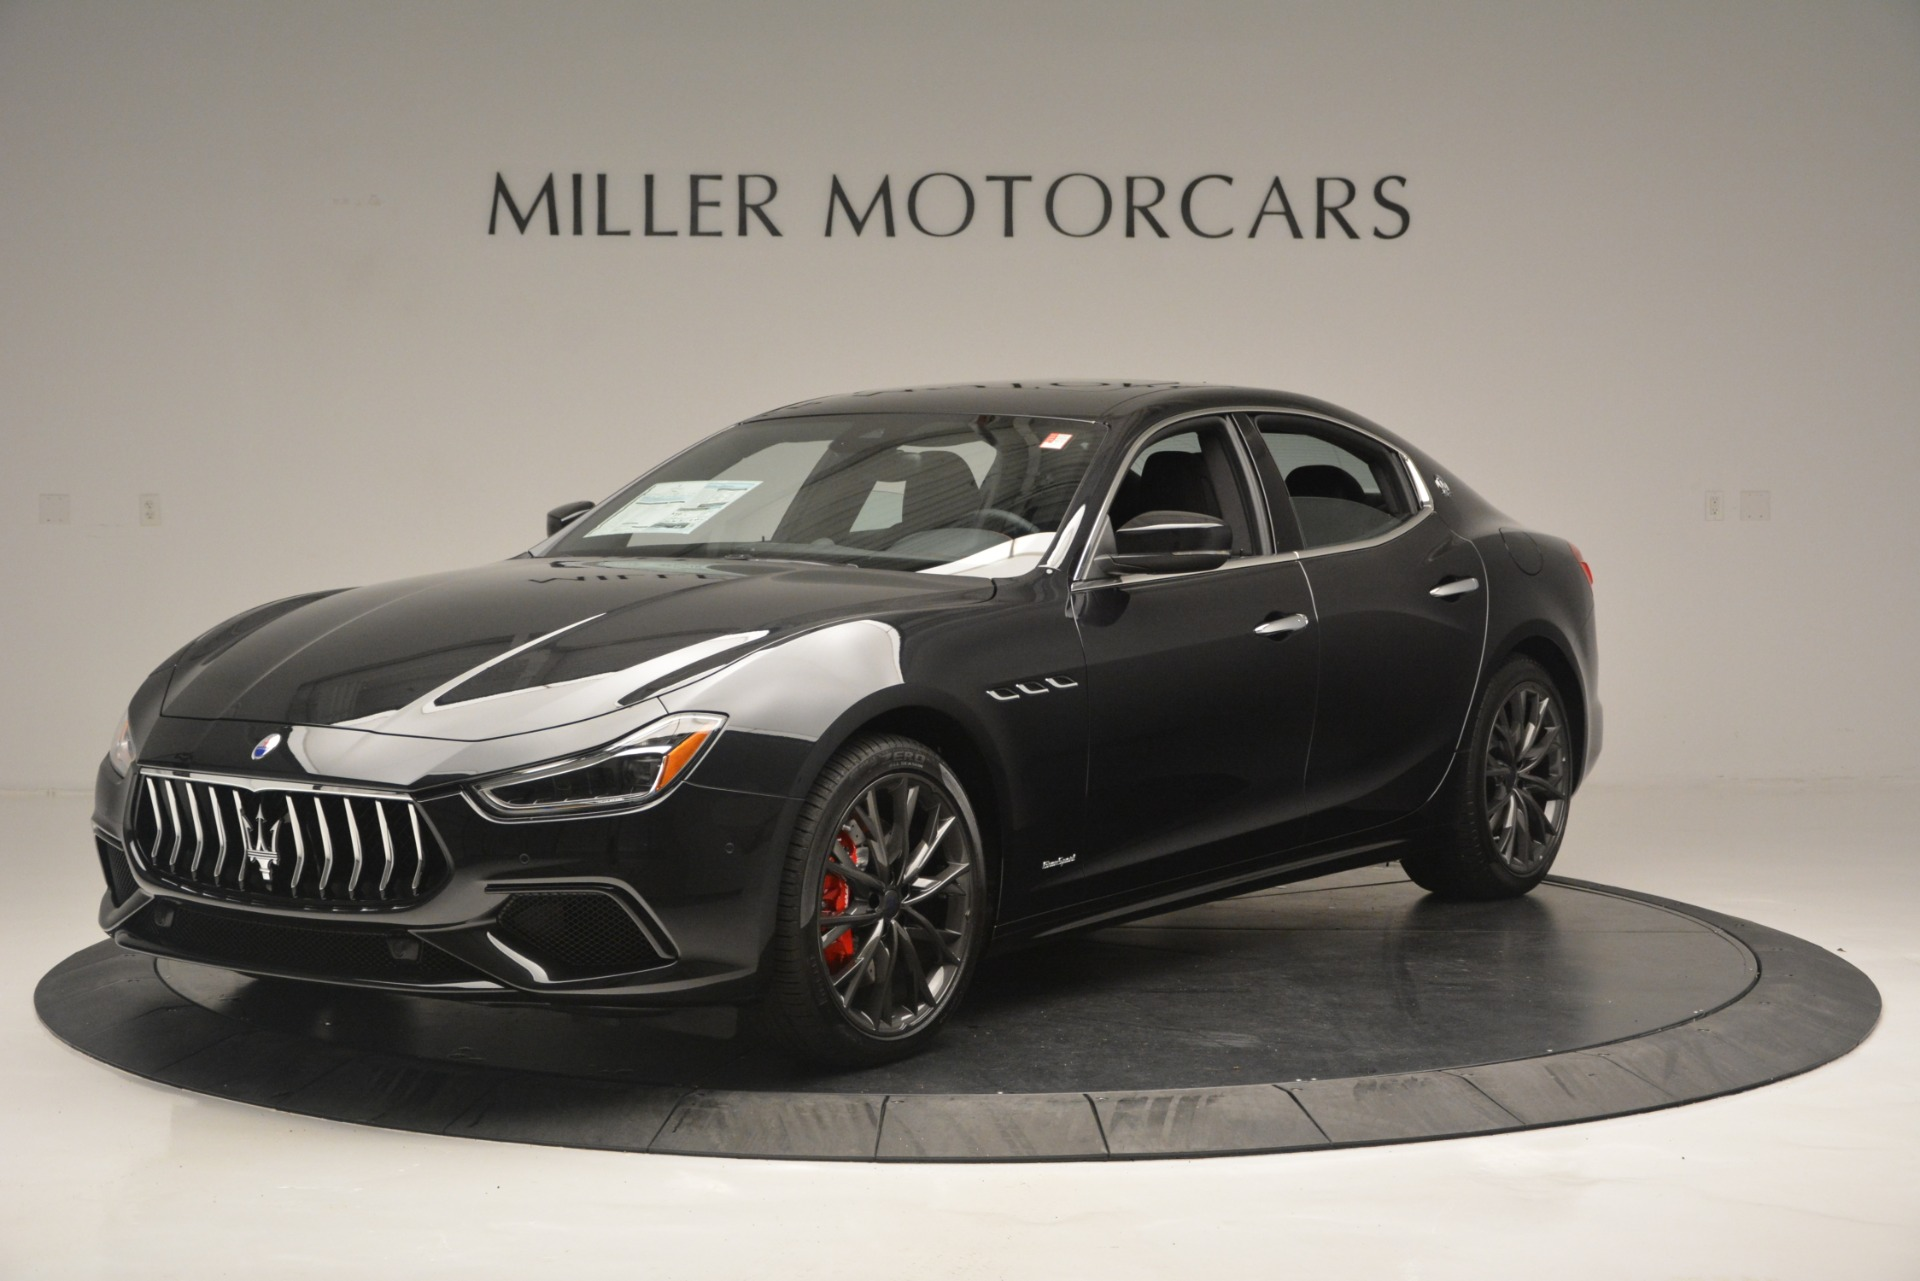 New 2019 Maserati Ghibli S Q4 GranSport For Sale In Westport, CT 2588_p2